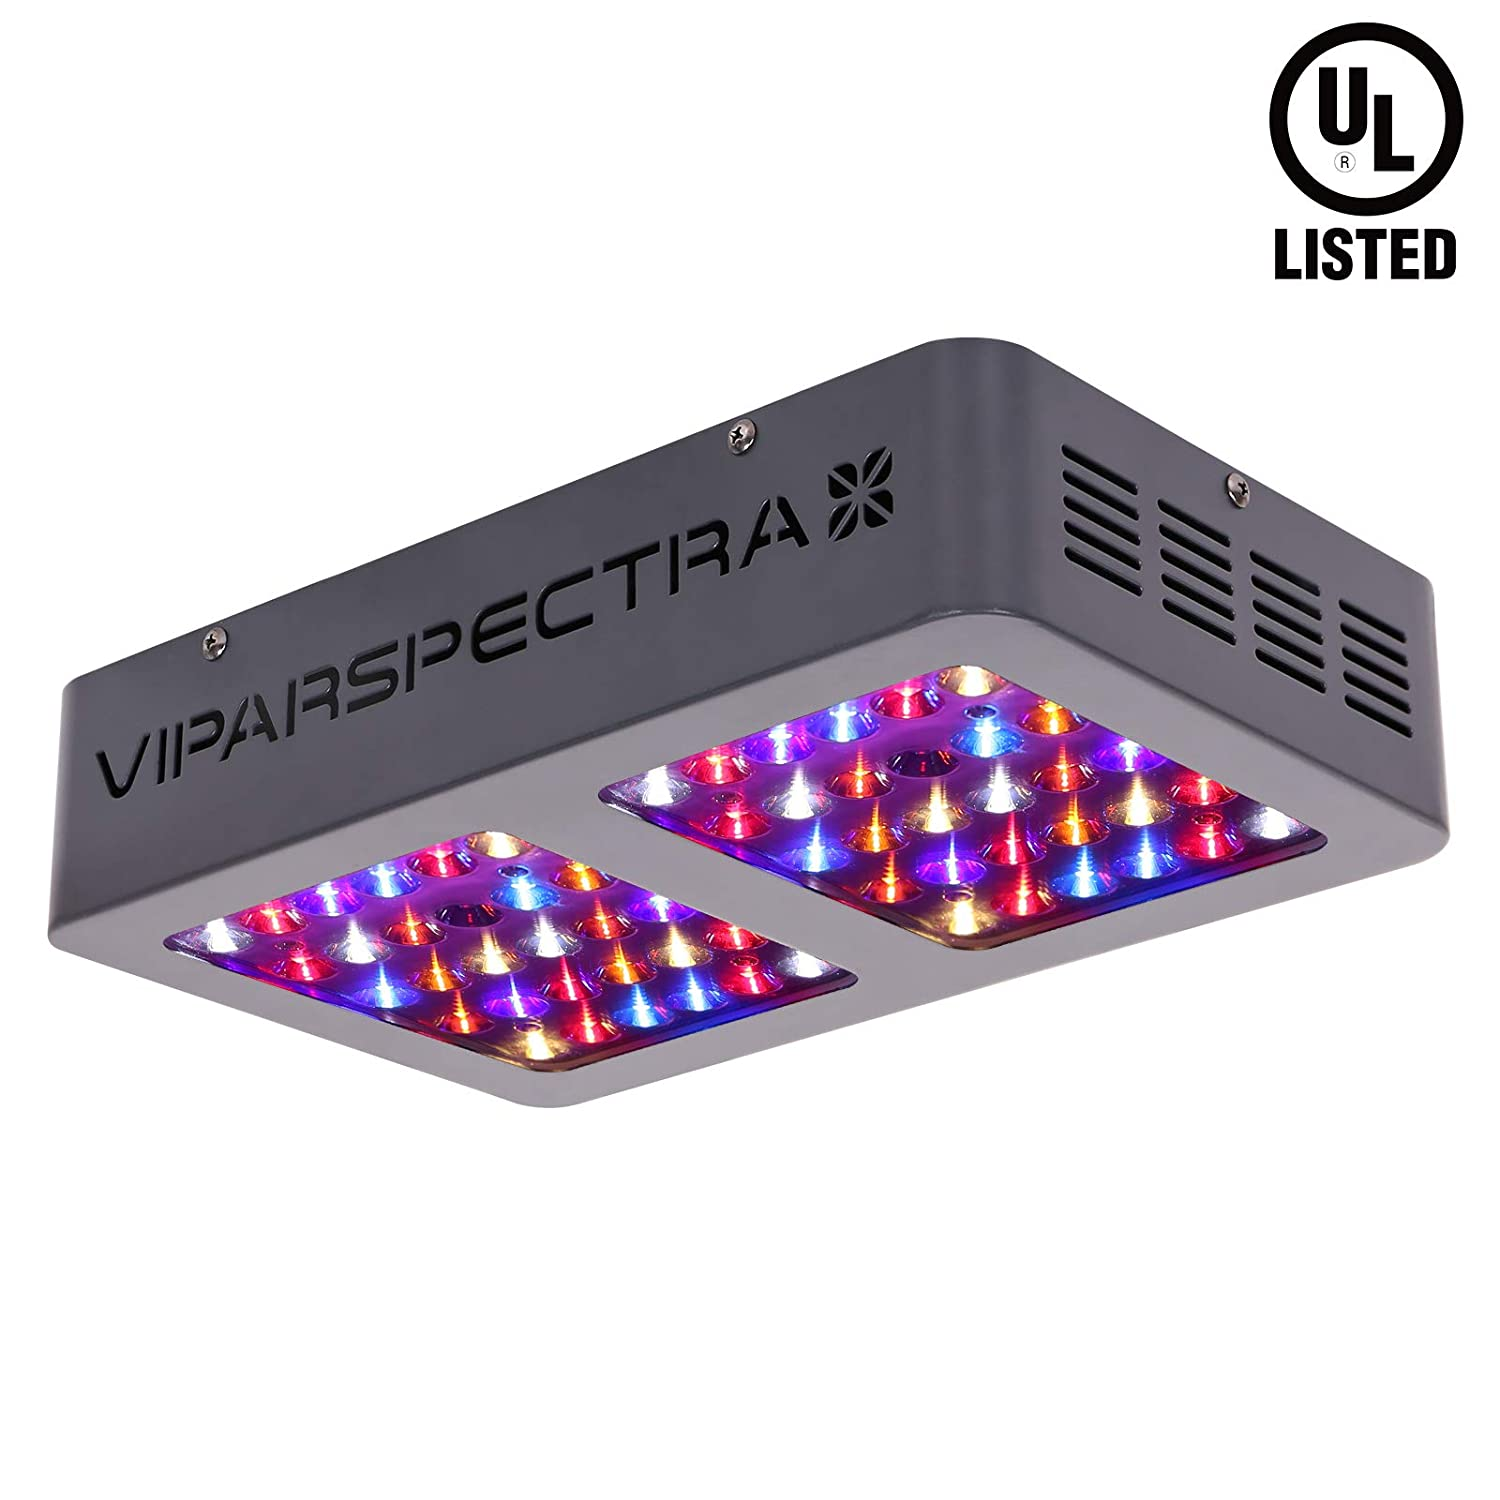 Top 10 Best Chinese Led Grow Lights Reviews in 2020 4